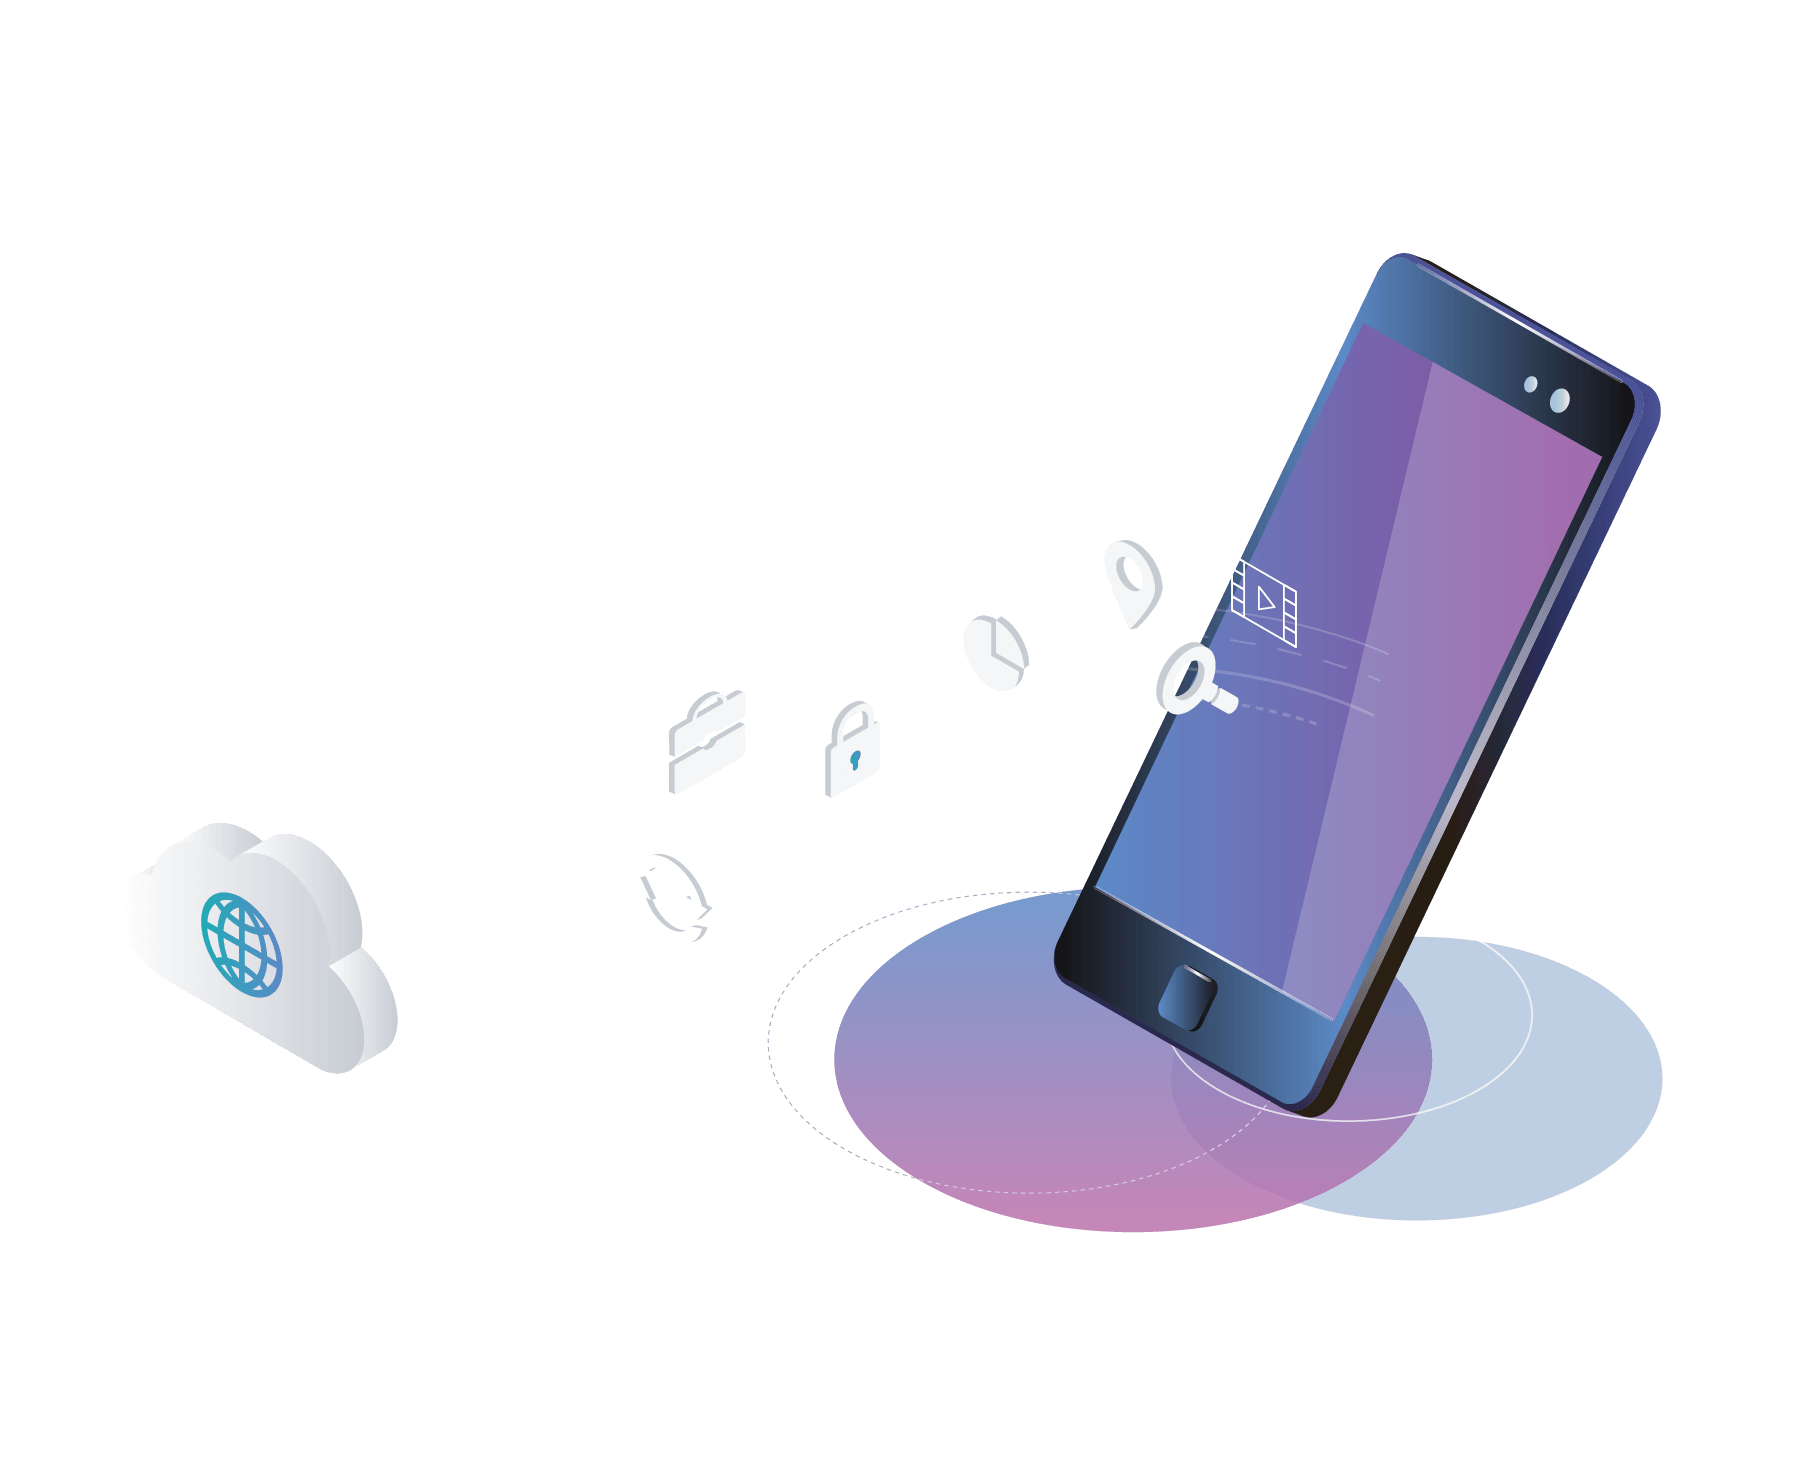 An illustration of a cloud-connected smartphone and its apps.